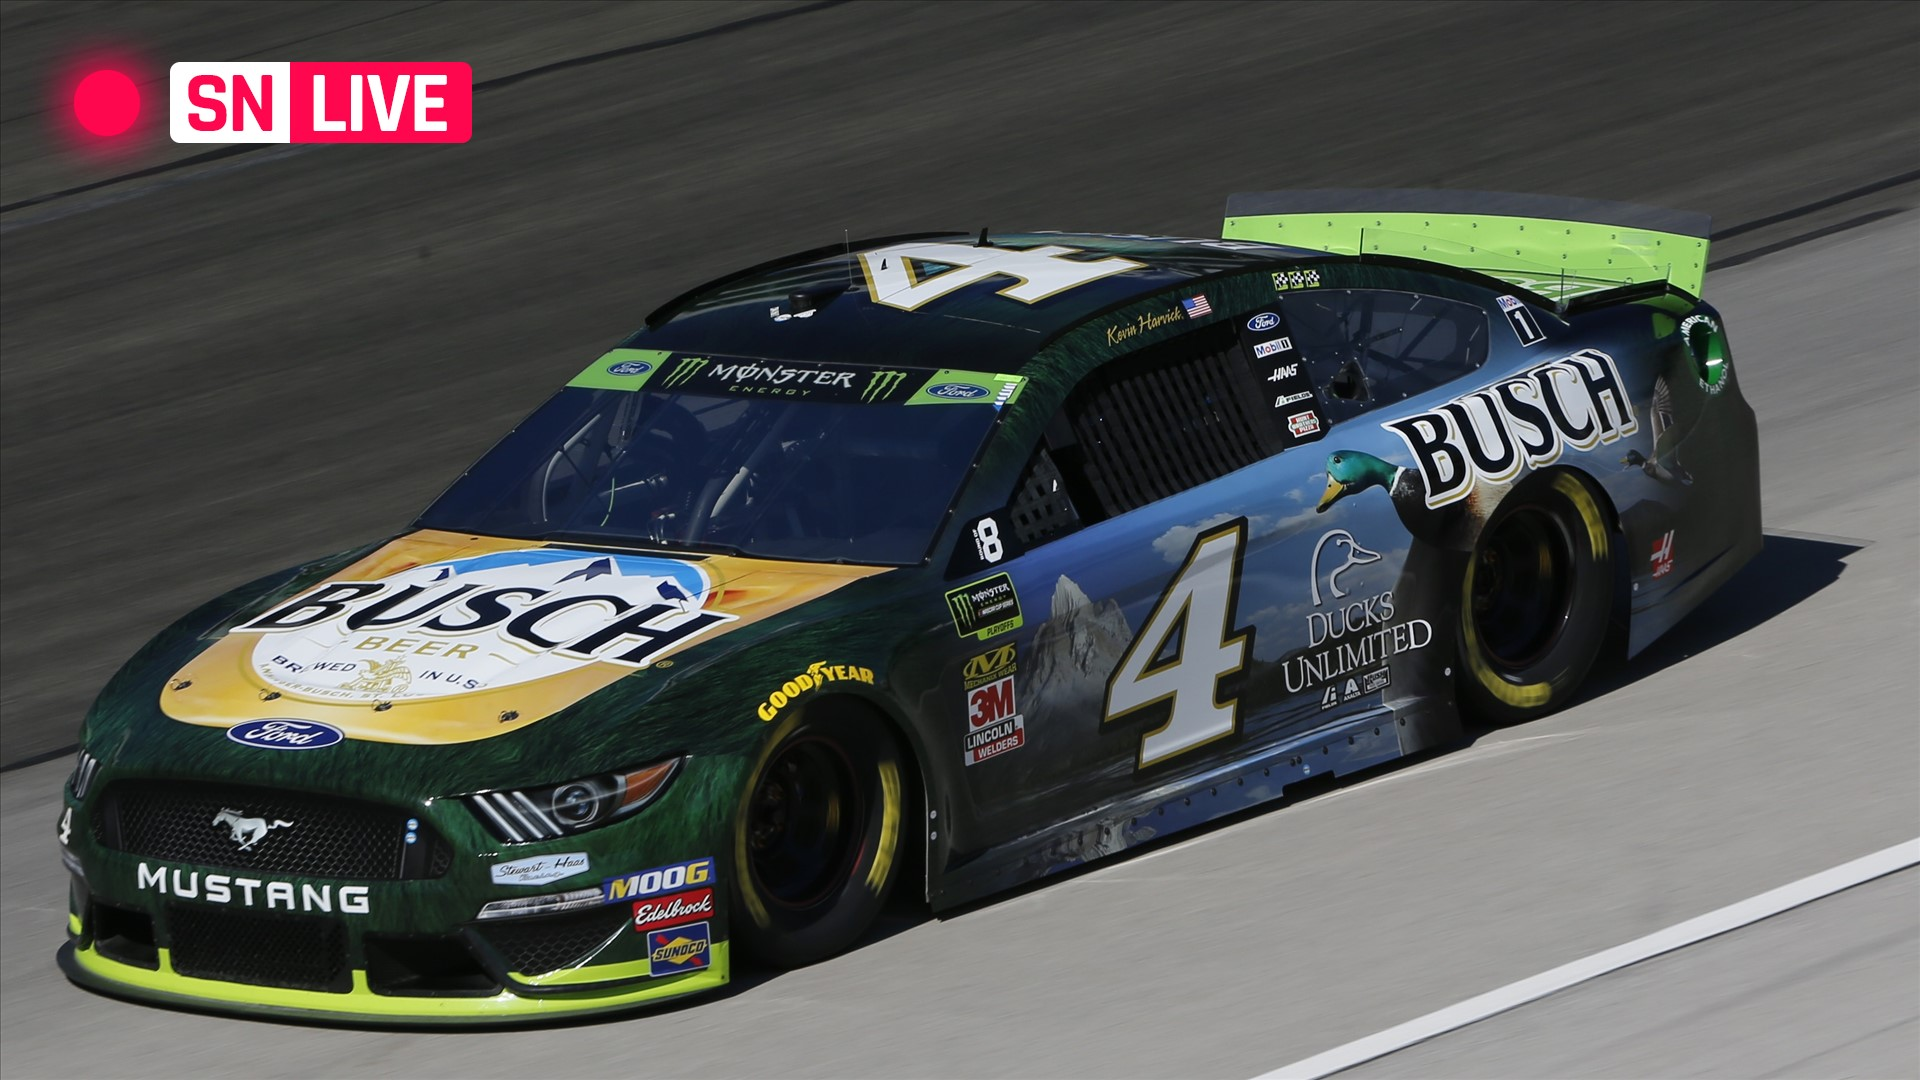 NASCAR at Texas: Live race updates, results, highlights from AAA Texas 500